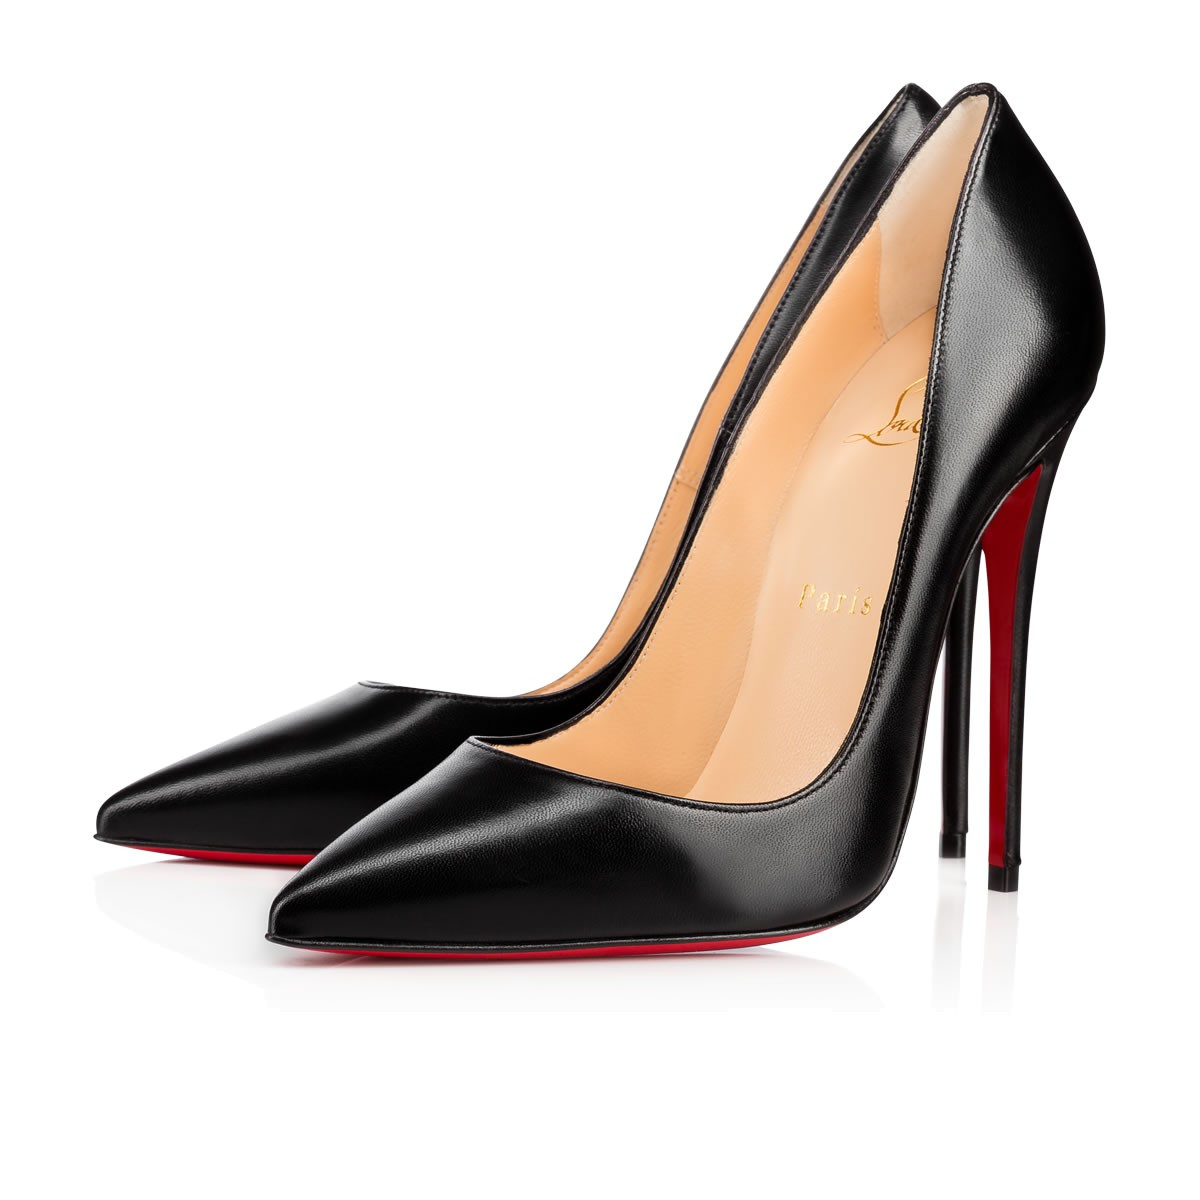 9aadb650d5e2 Shoes - So Kate - Christian Louboutin ...